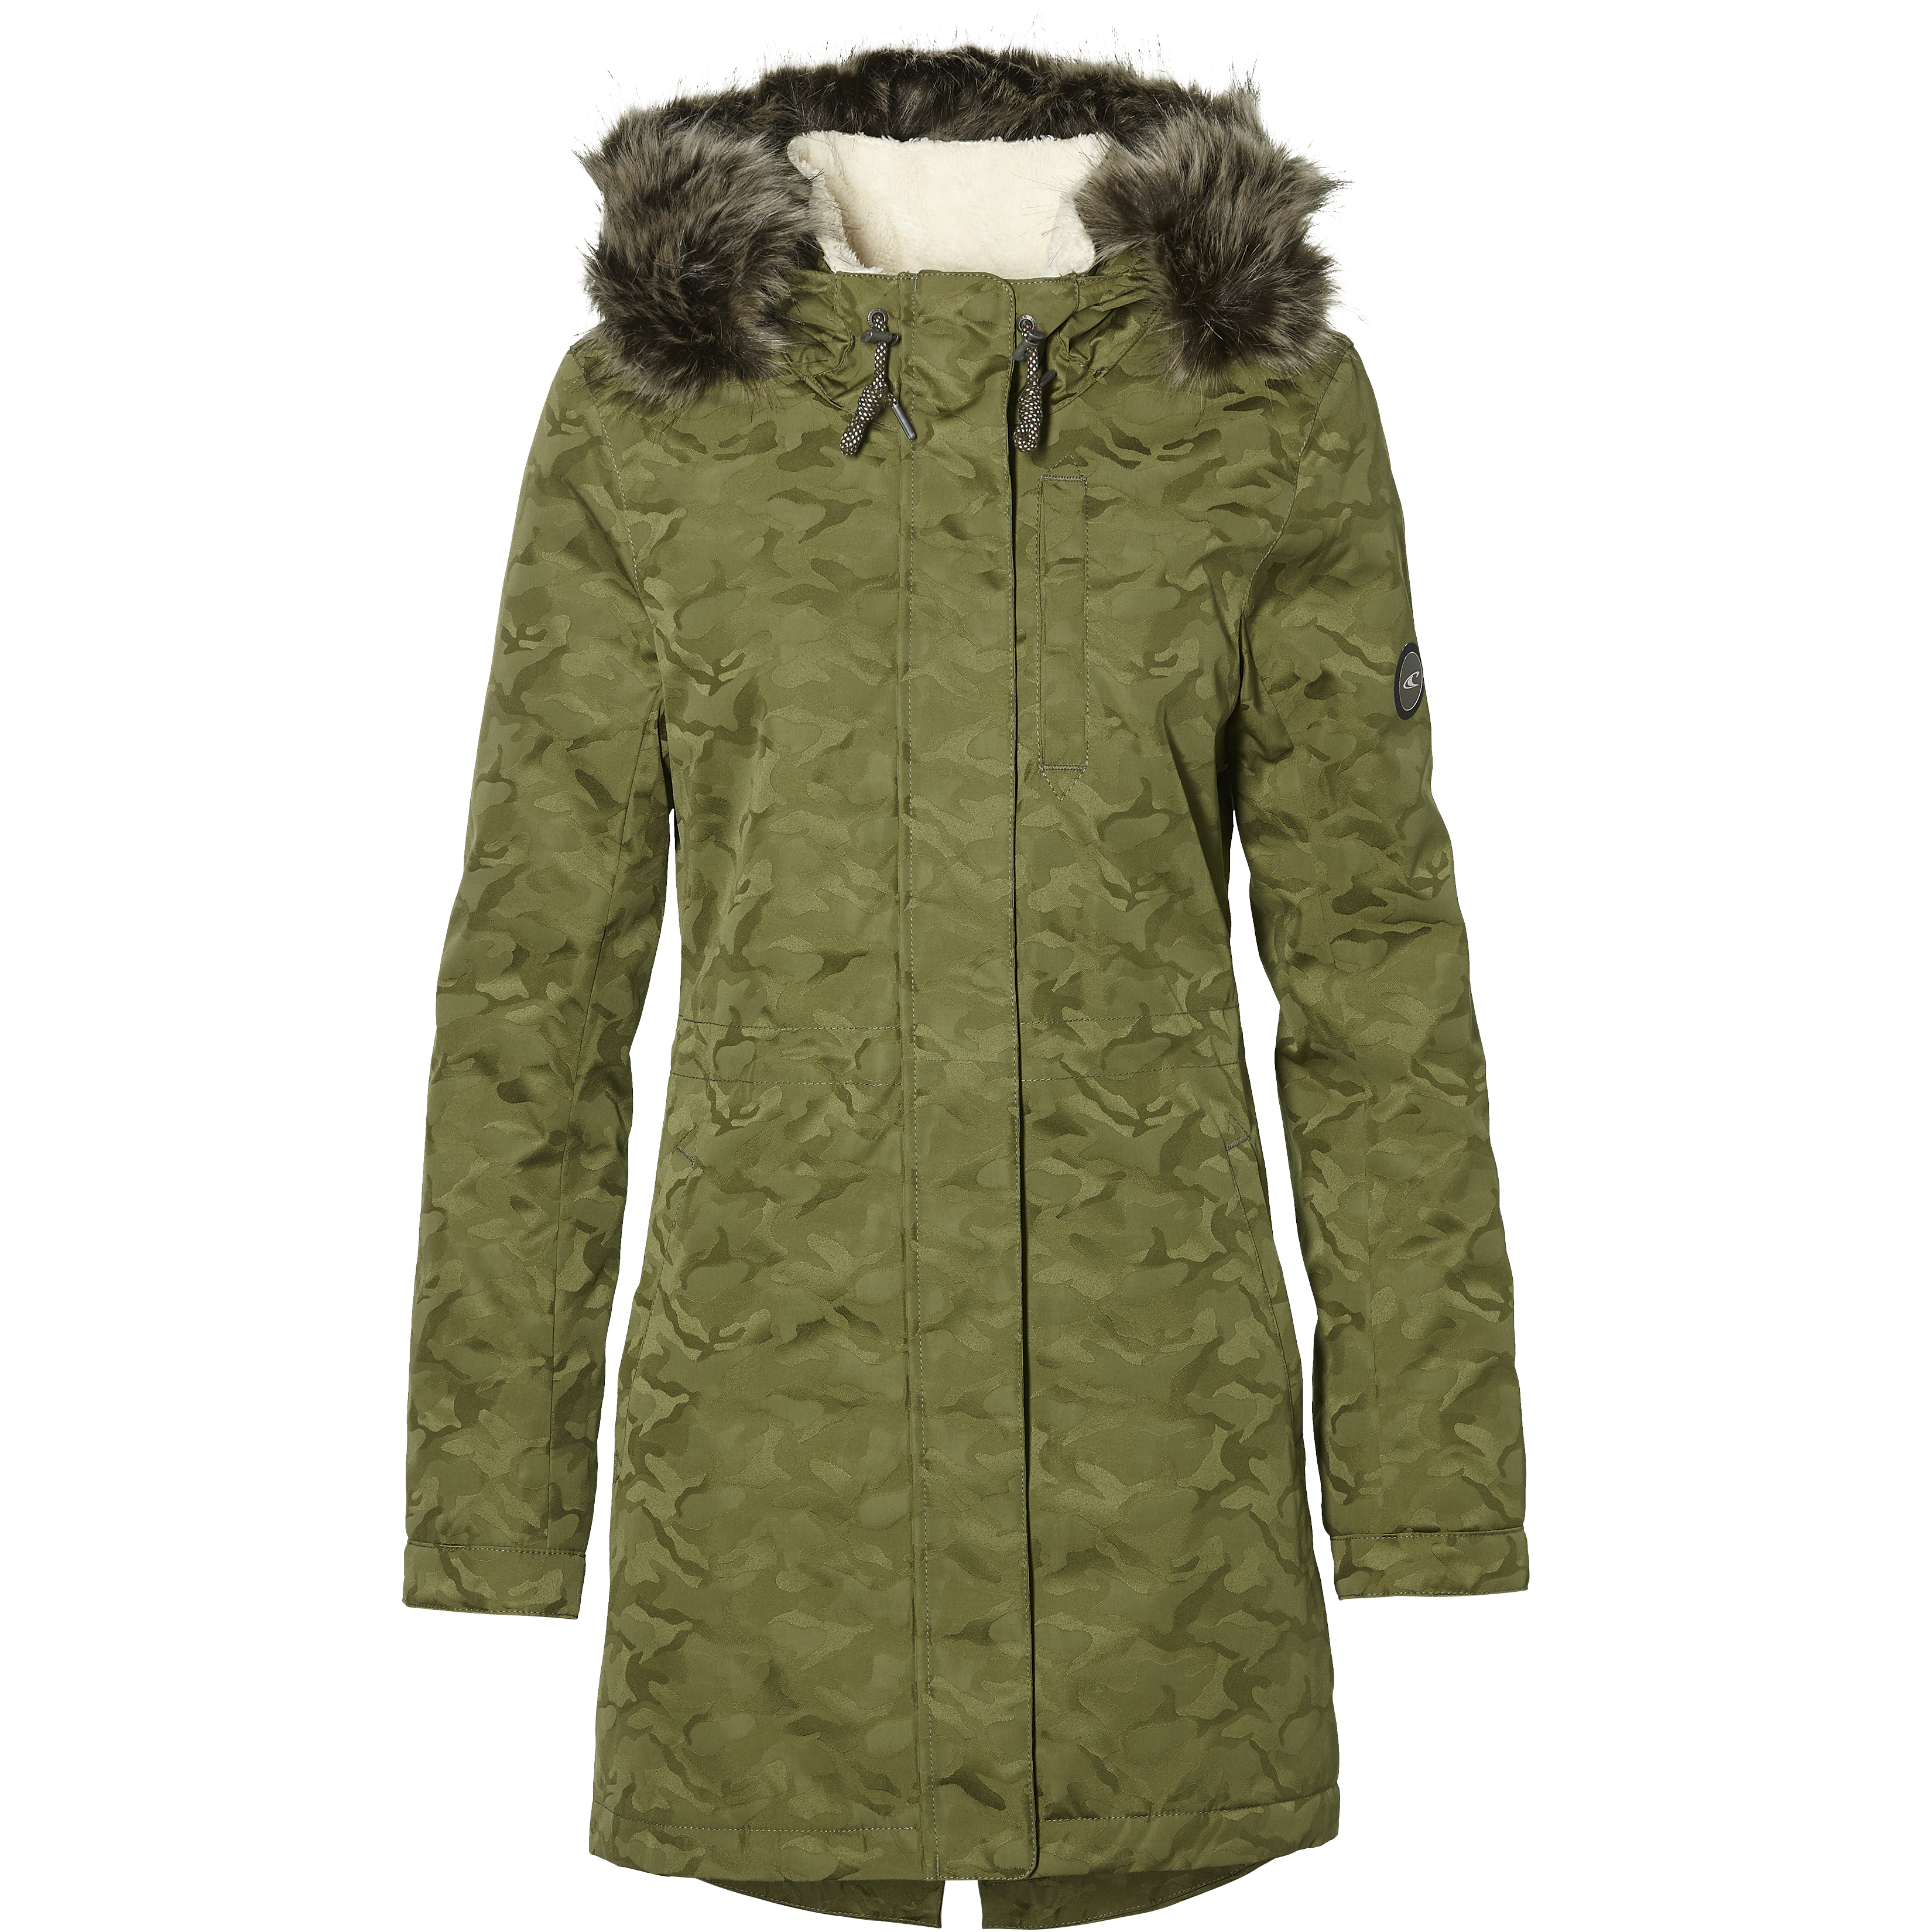 Parka Dark Lw O'neill Green Jacke Smooth Funktionelle Frontier MzGqUpSV